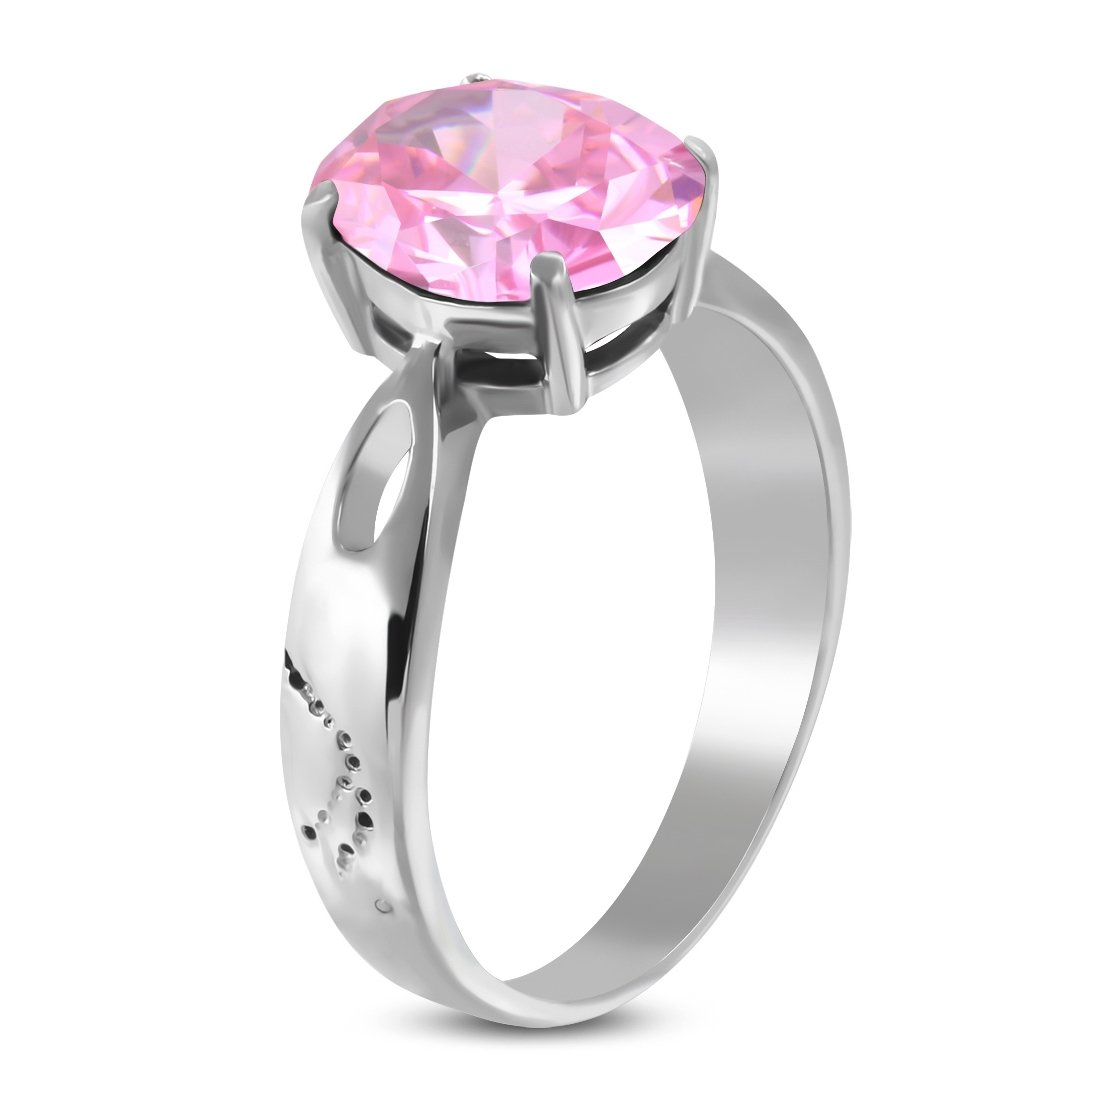 Stainless Steel Prong-Set Oval Engagement Ring with Rose Pink CZ